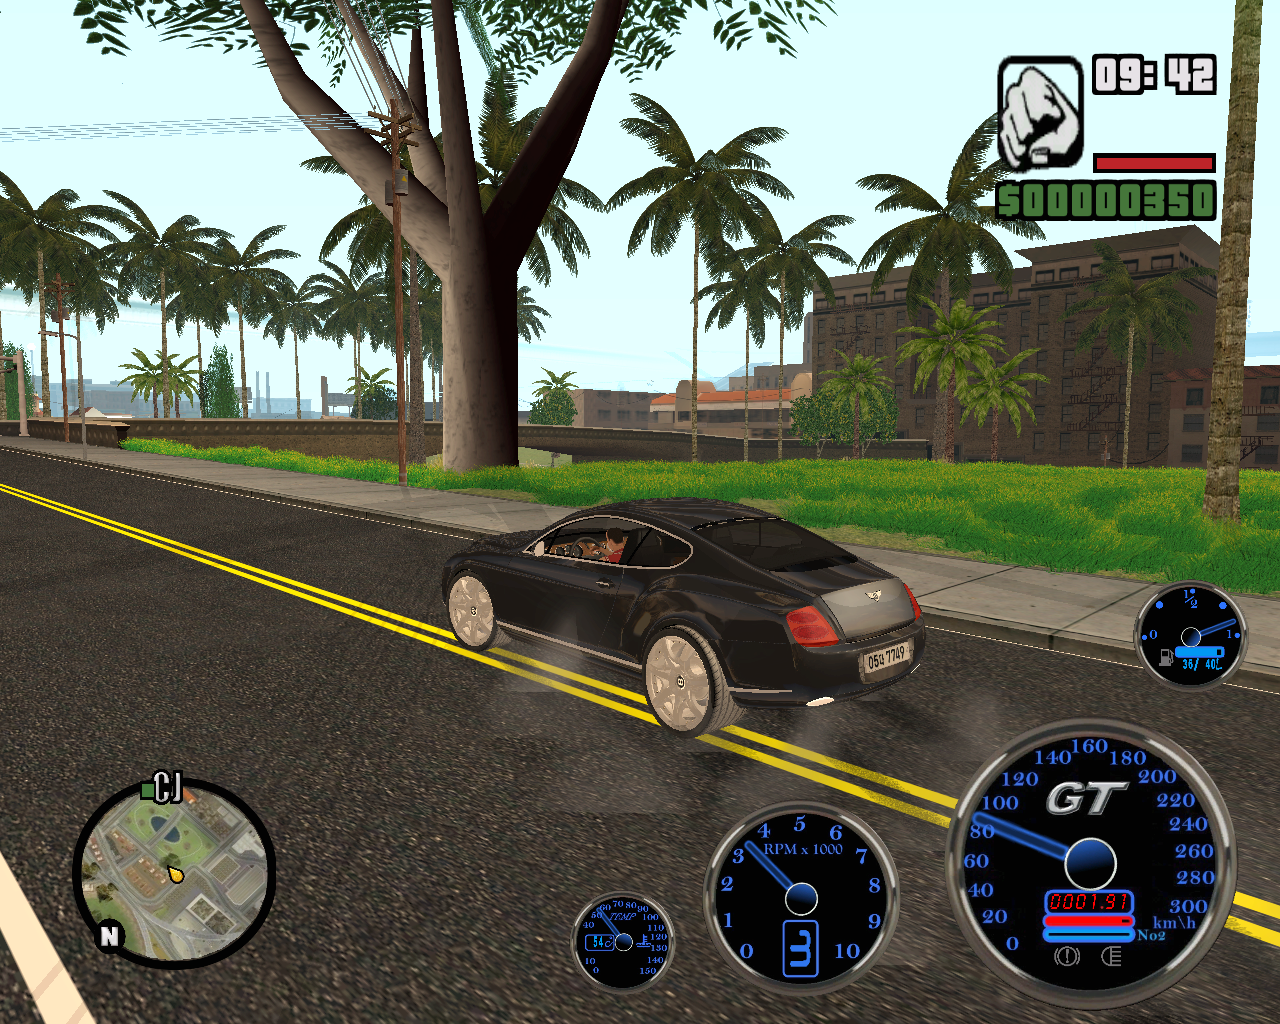 gta san andreas download free pc torent